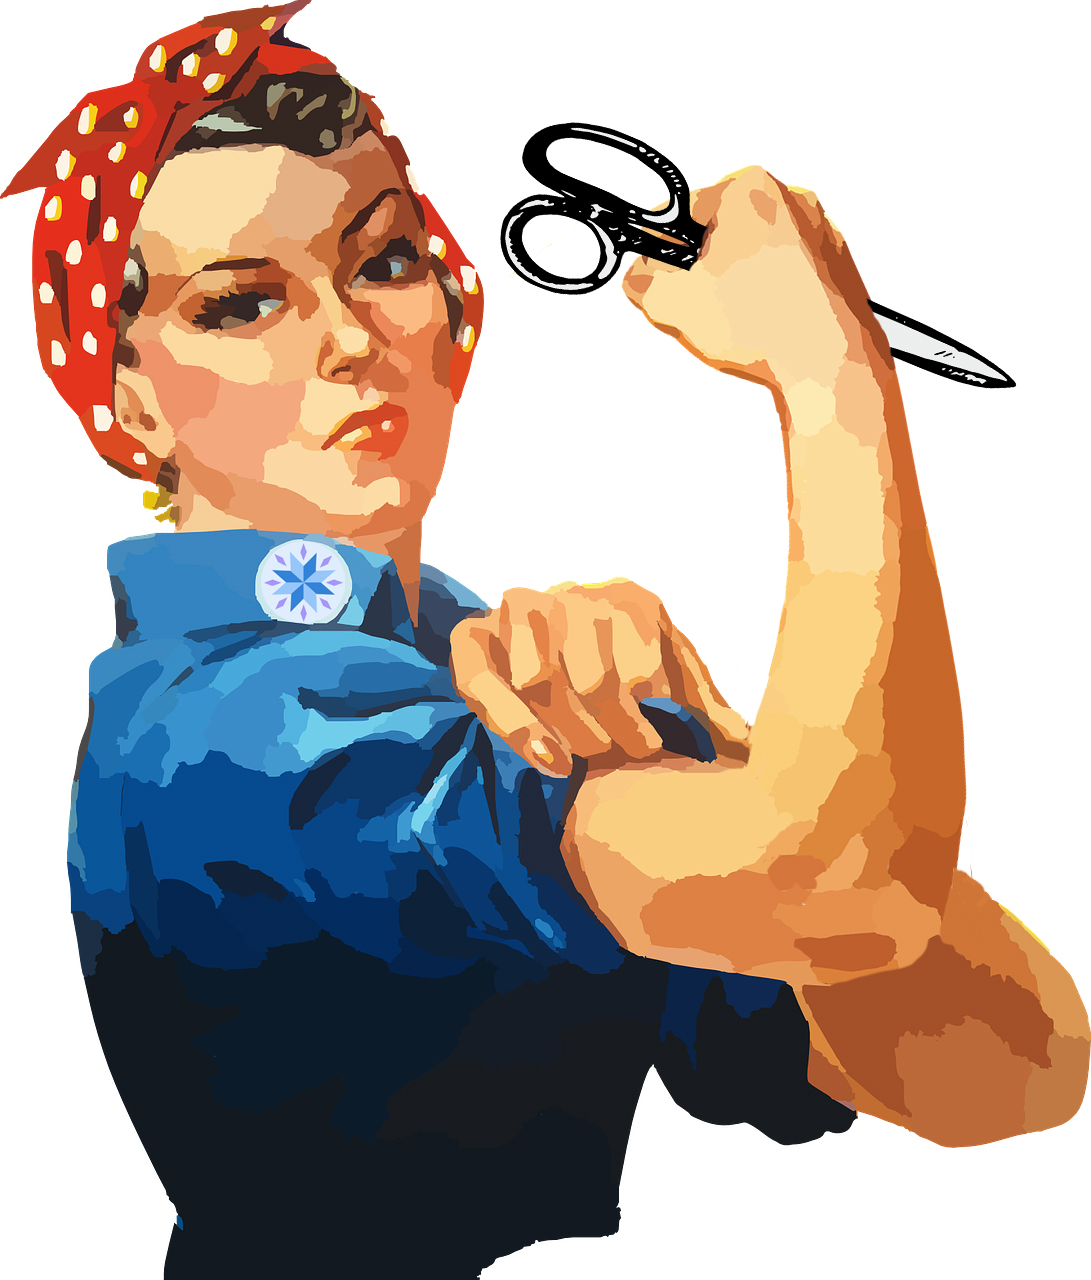 Rosie the Riveter as Power Sewer